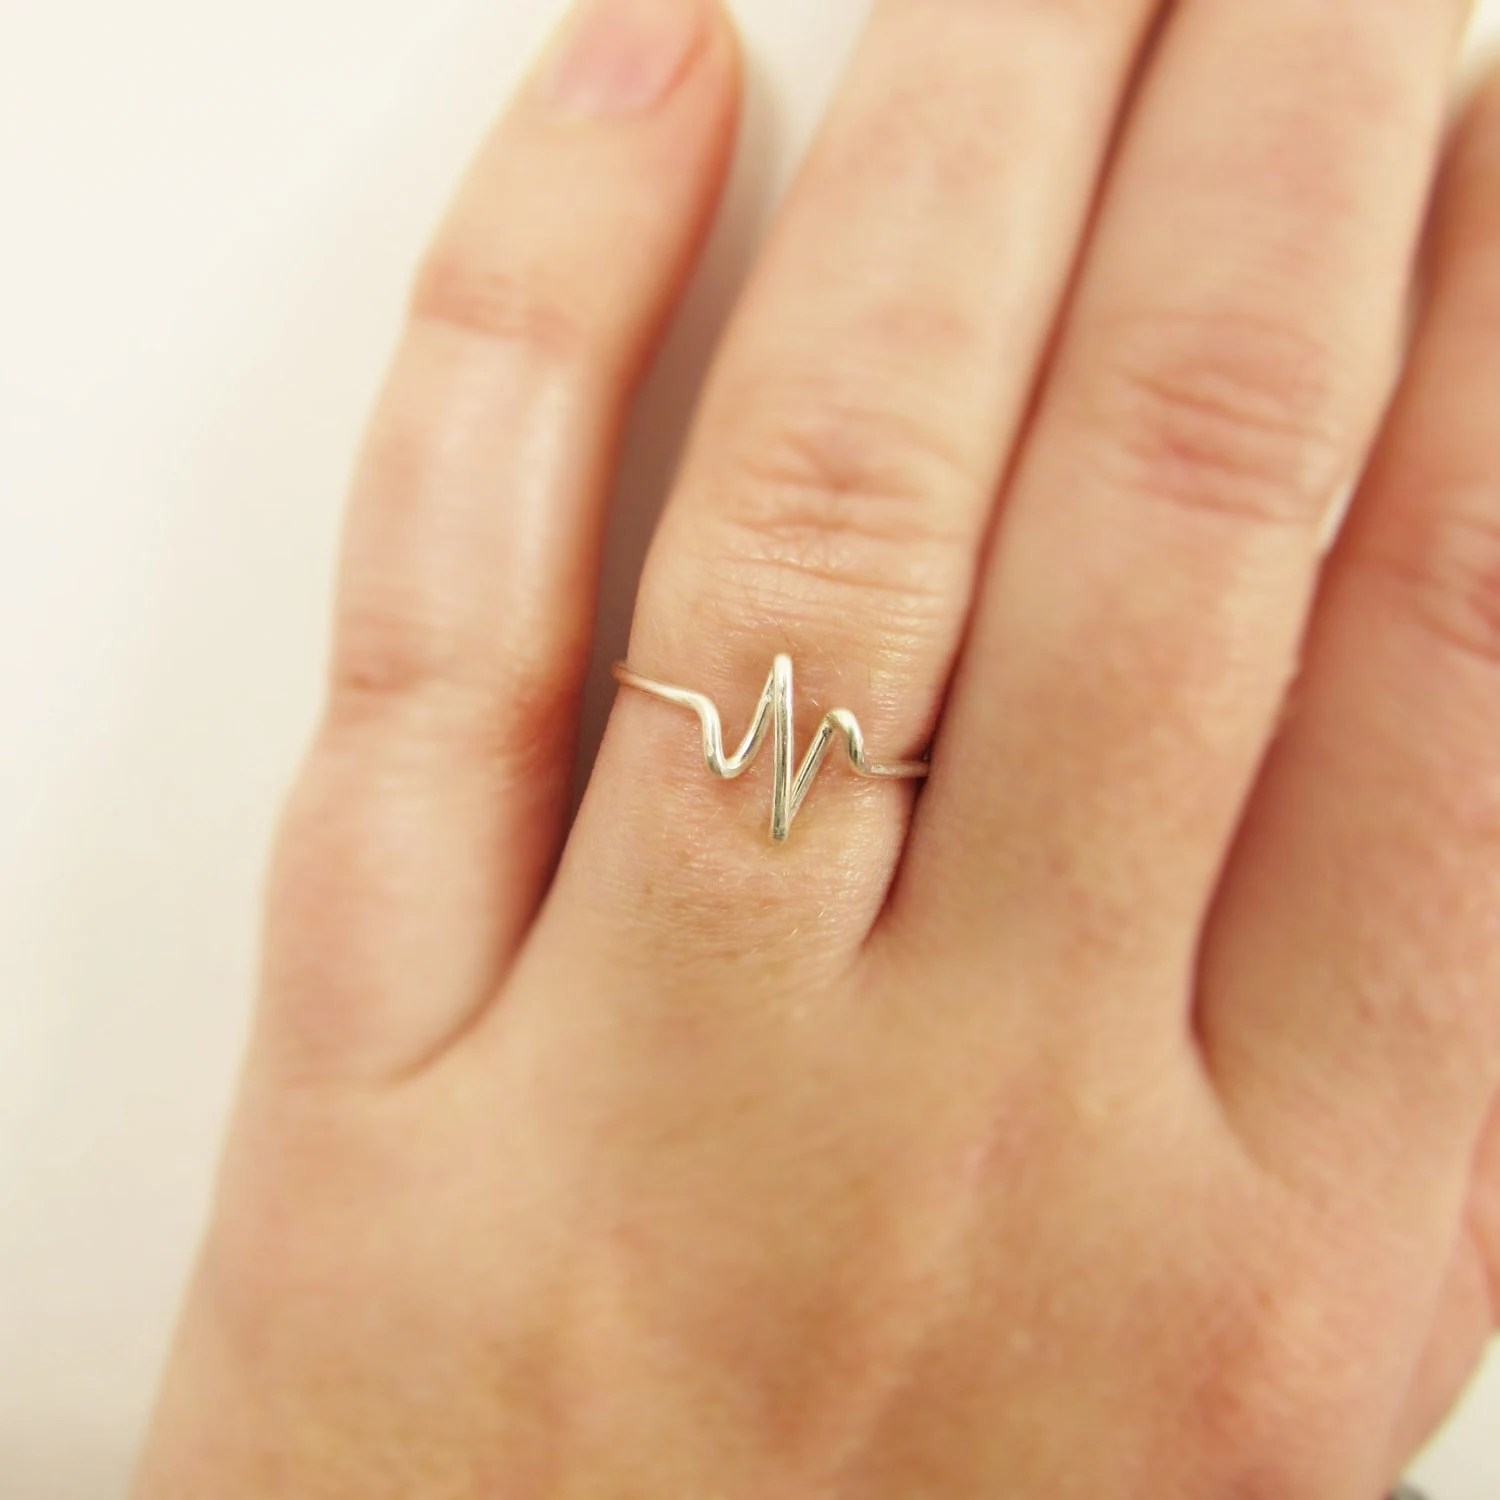 nurse jewelry wedding bands for nurses Heartbeat Ring Sterling Silver or Gold Wire Wrap Ring EKG Pulse Nurse Gift Doctor Gift Bride Girlfriend Gifts Jewelry Gifts Under 10